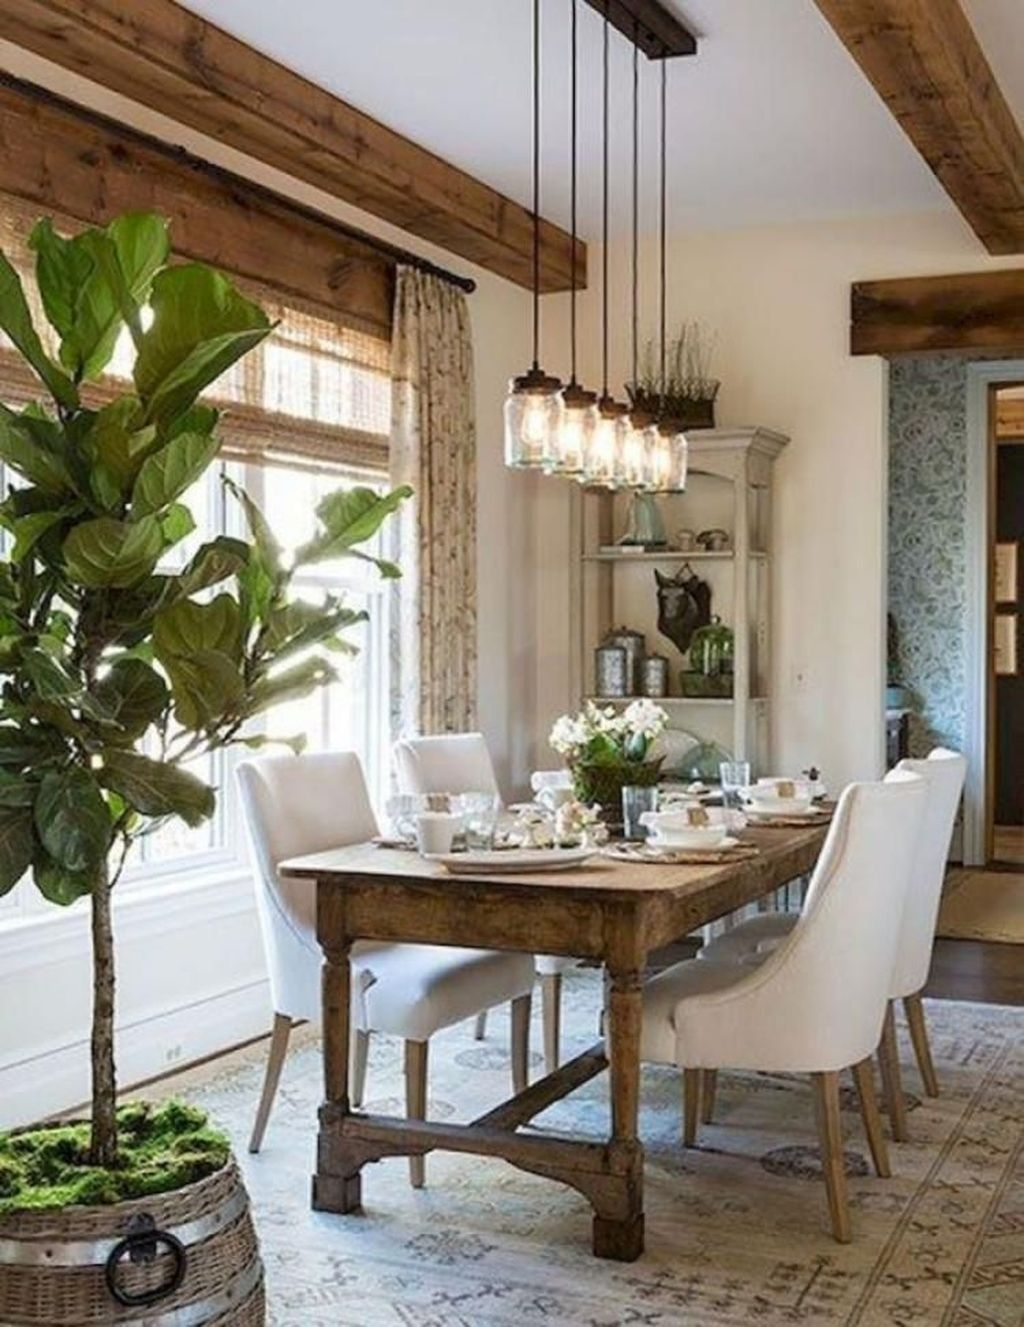 Popular Farmhouse Dining Room Design Ideas Trend 2019 07